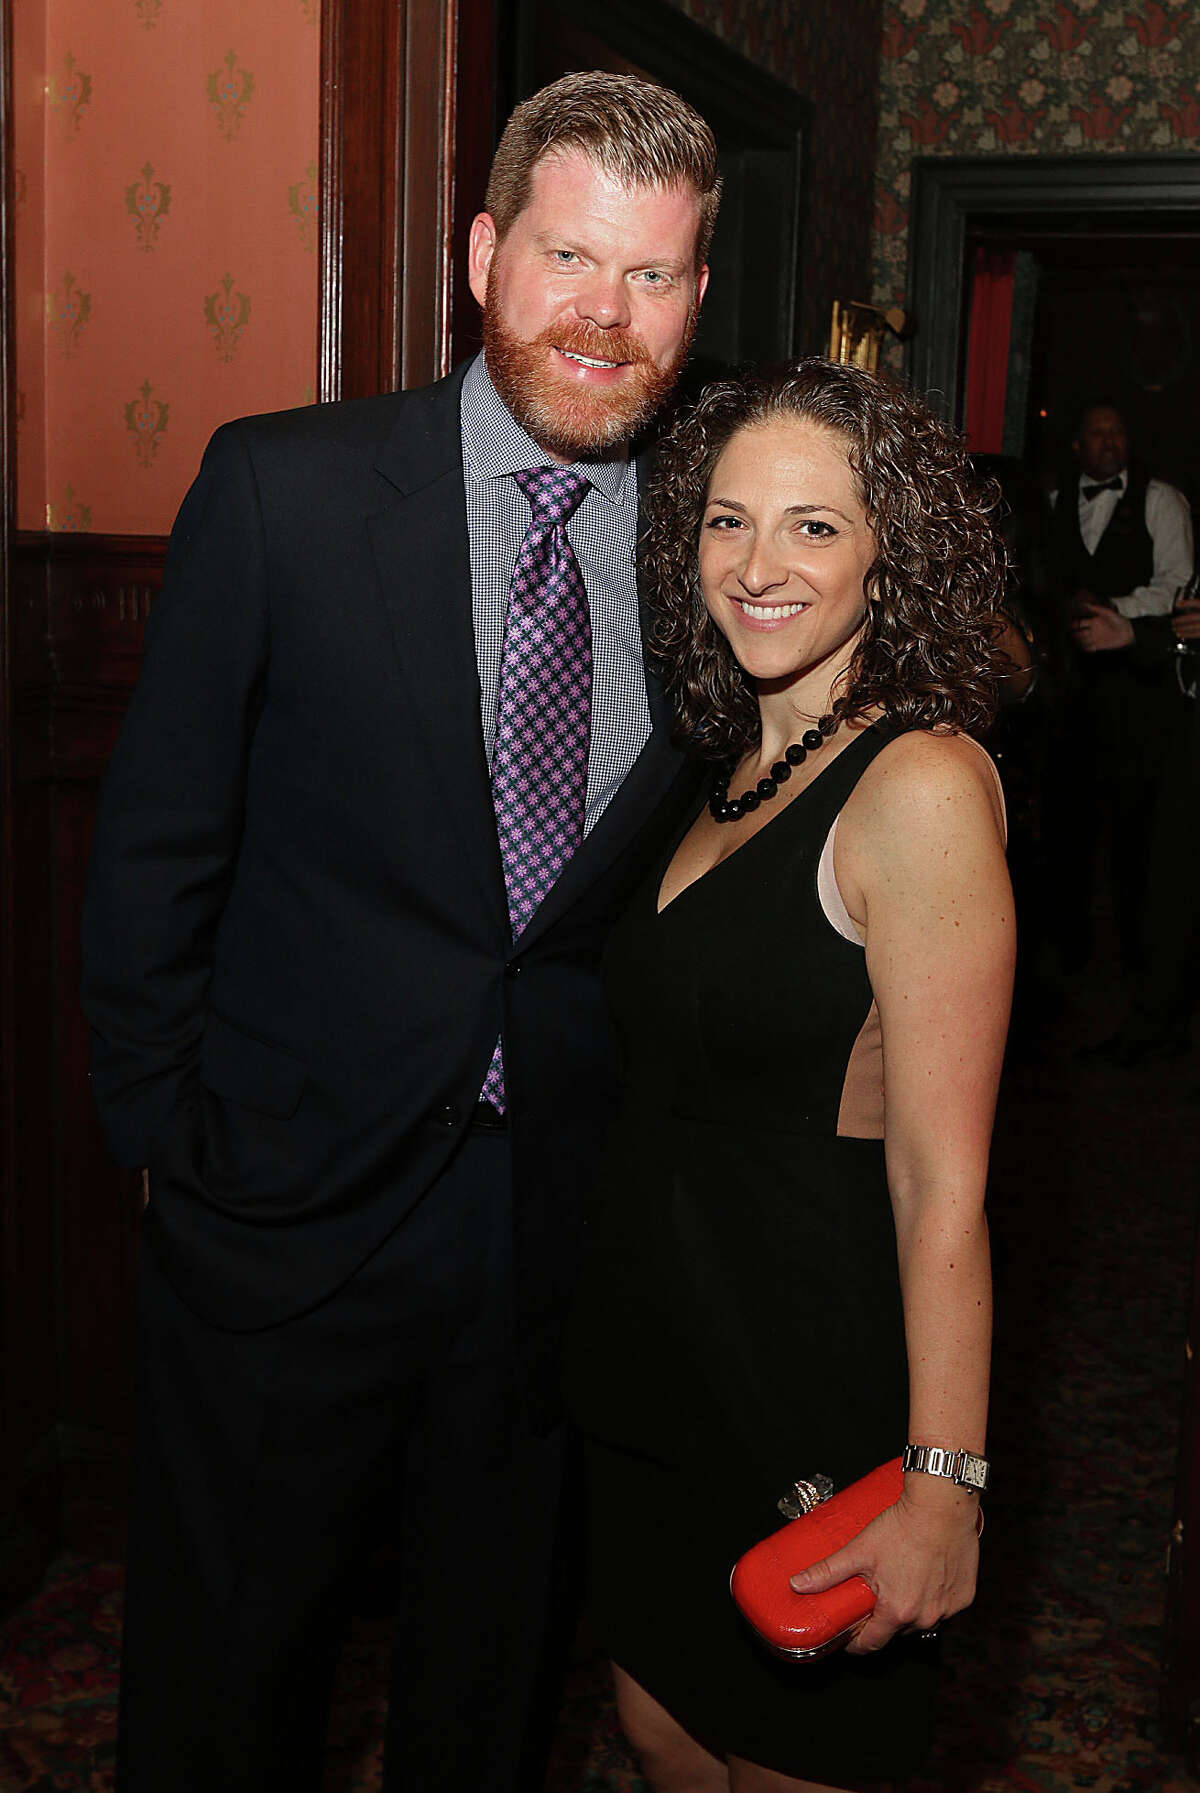 Were you Seen at Autumn Mix & Mingle, a fundraising event for the Cystic Fibrosis Foundation held at the Fort Orange Club in Albany on Saturday, Nov. 1, 2014?